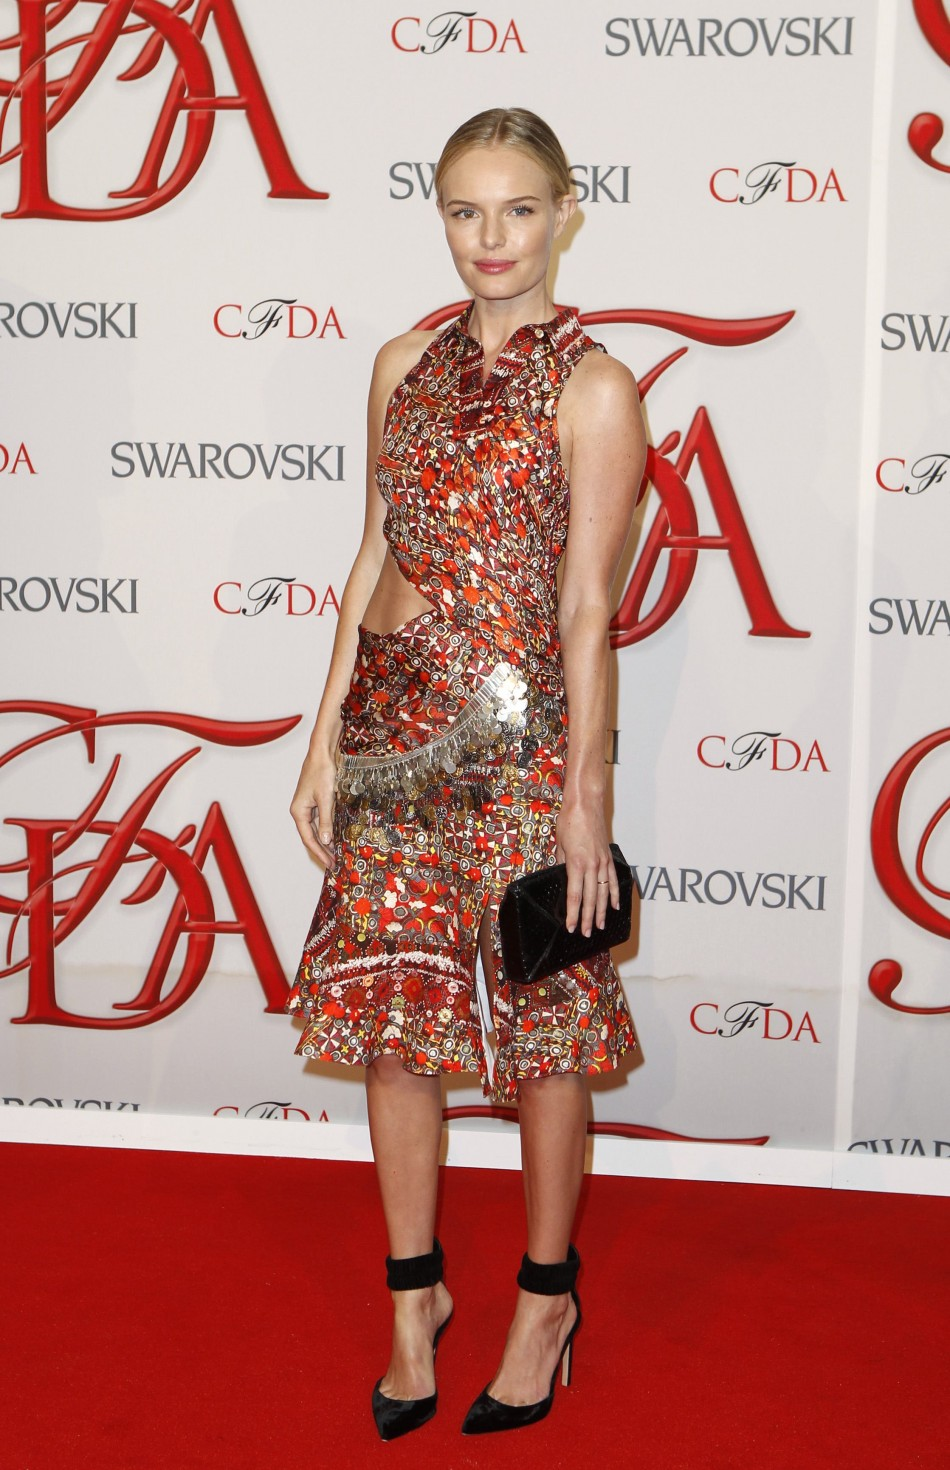 Kate Bosworth attends the 2012 CFDA Fashion Awards in New York